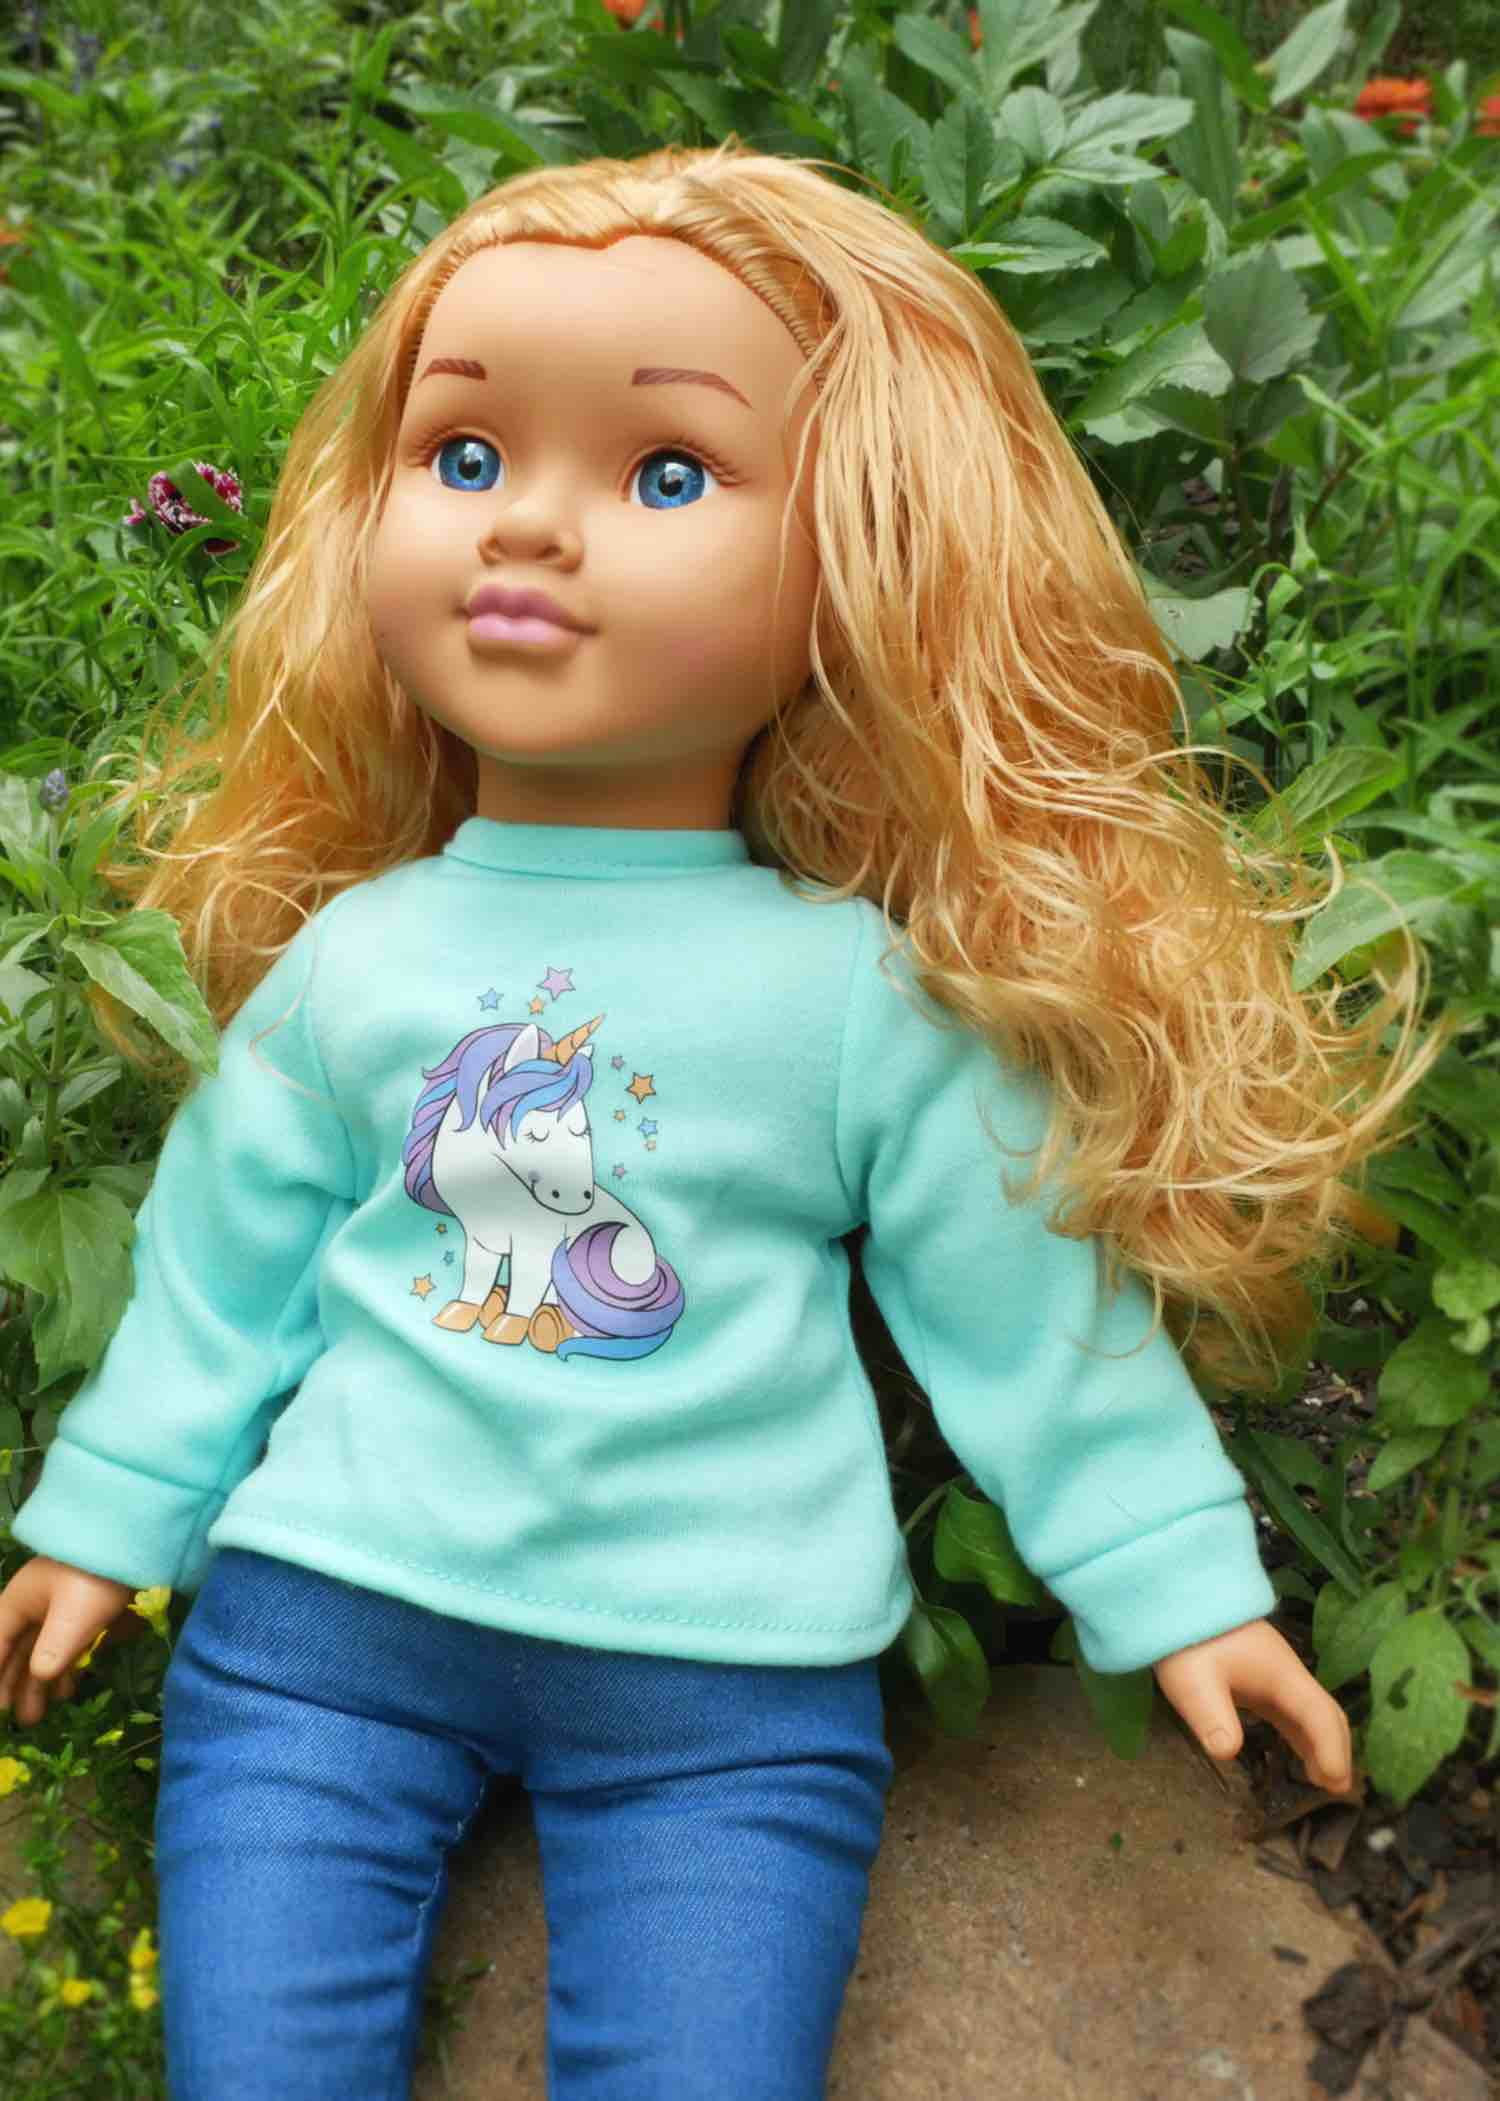 Blonde baby doll toddler doll positively perfect doll